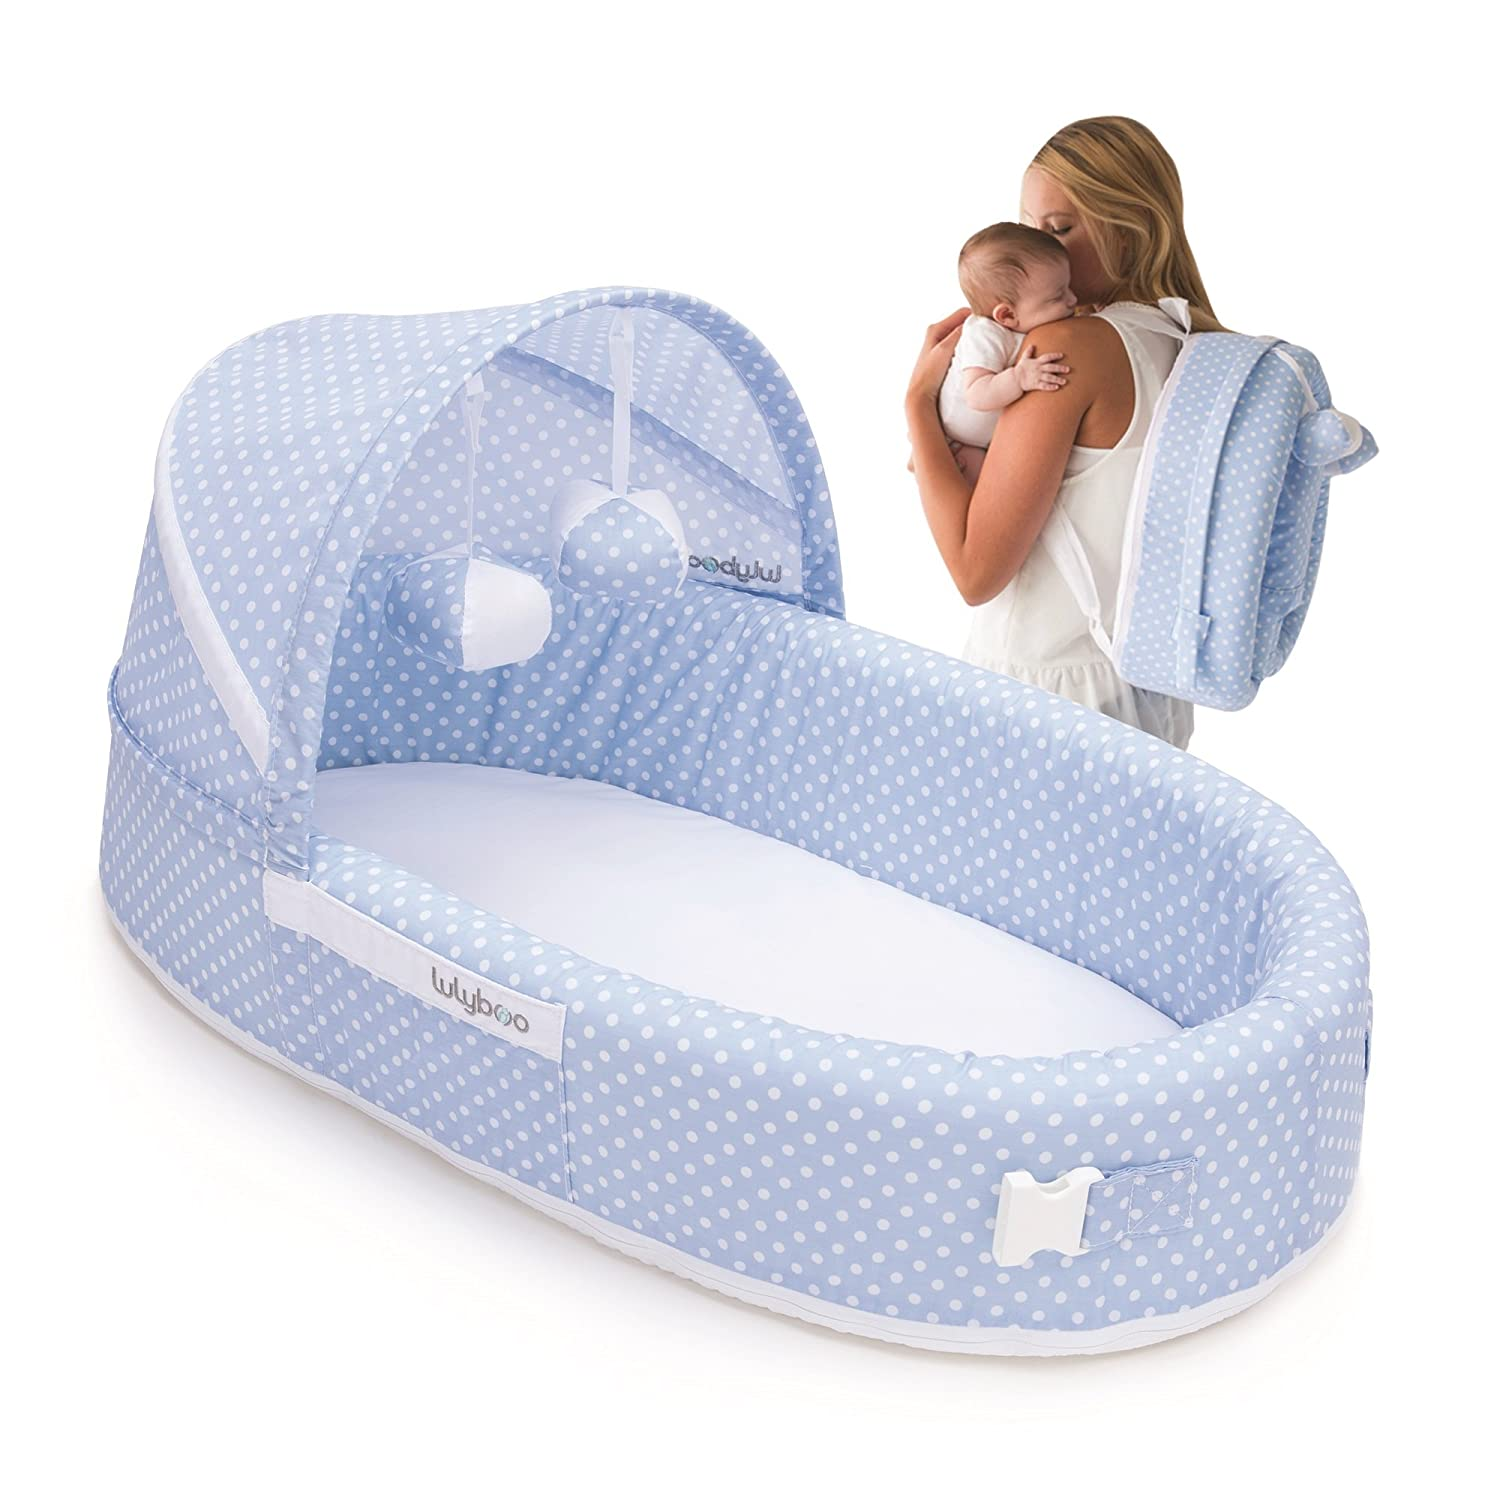 b690011d2454 Amazon.com   Lulyboo Baby Lounger to Go - Foldable Travel Bassinet ...